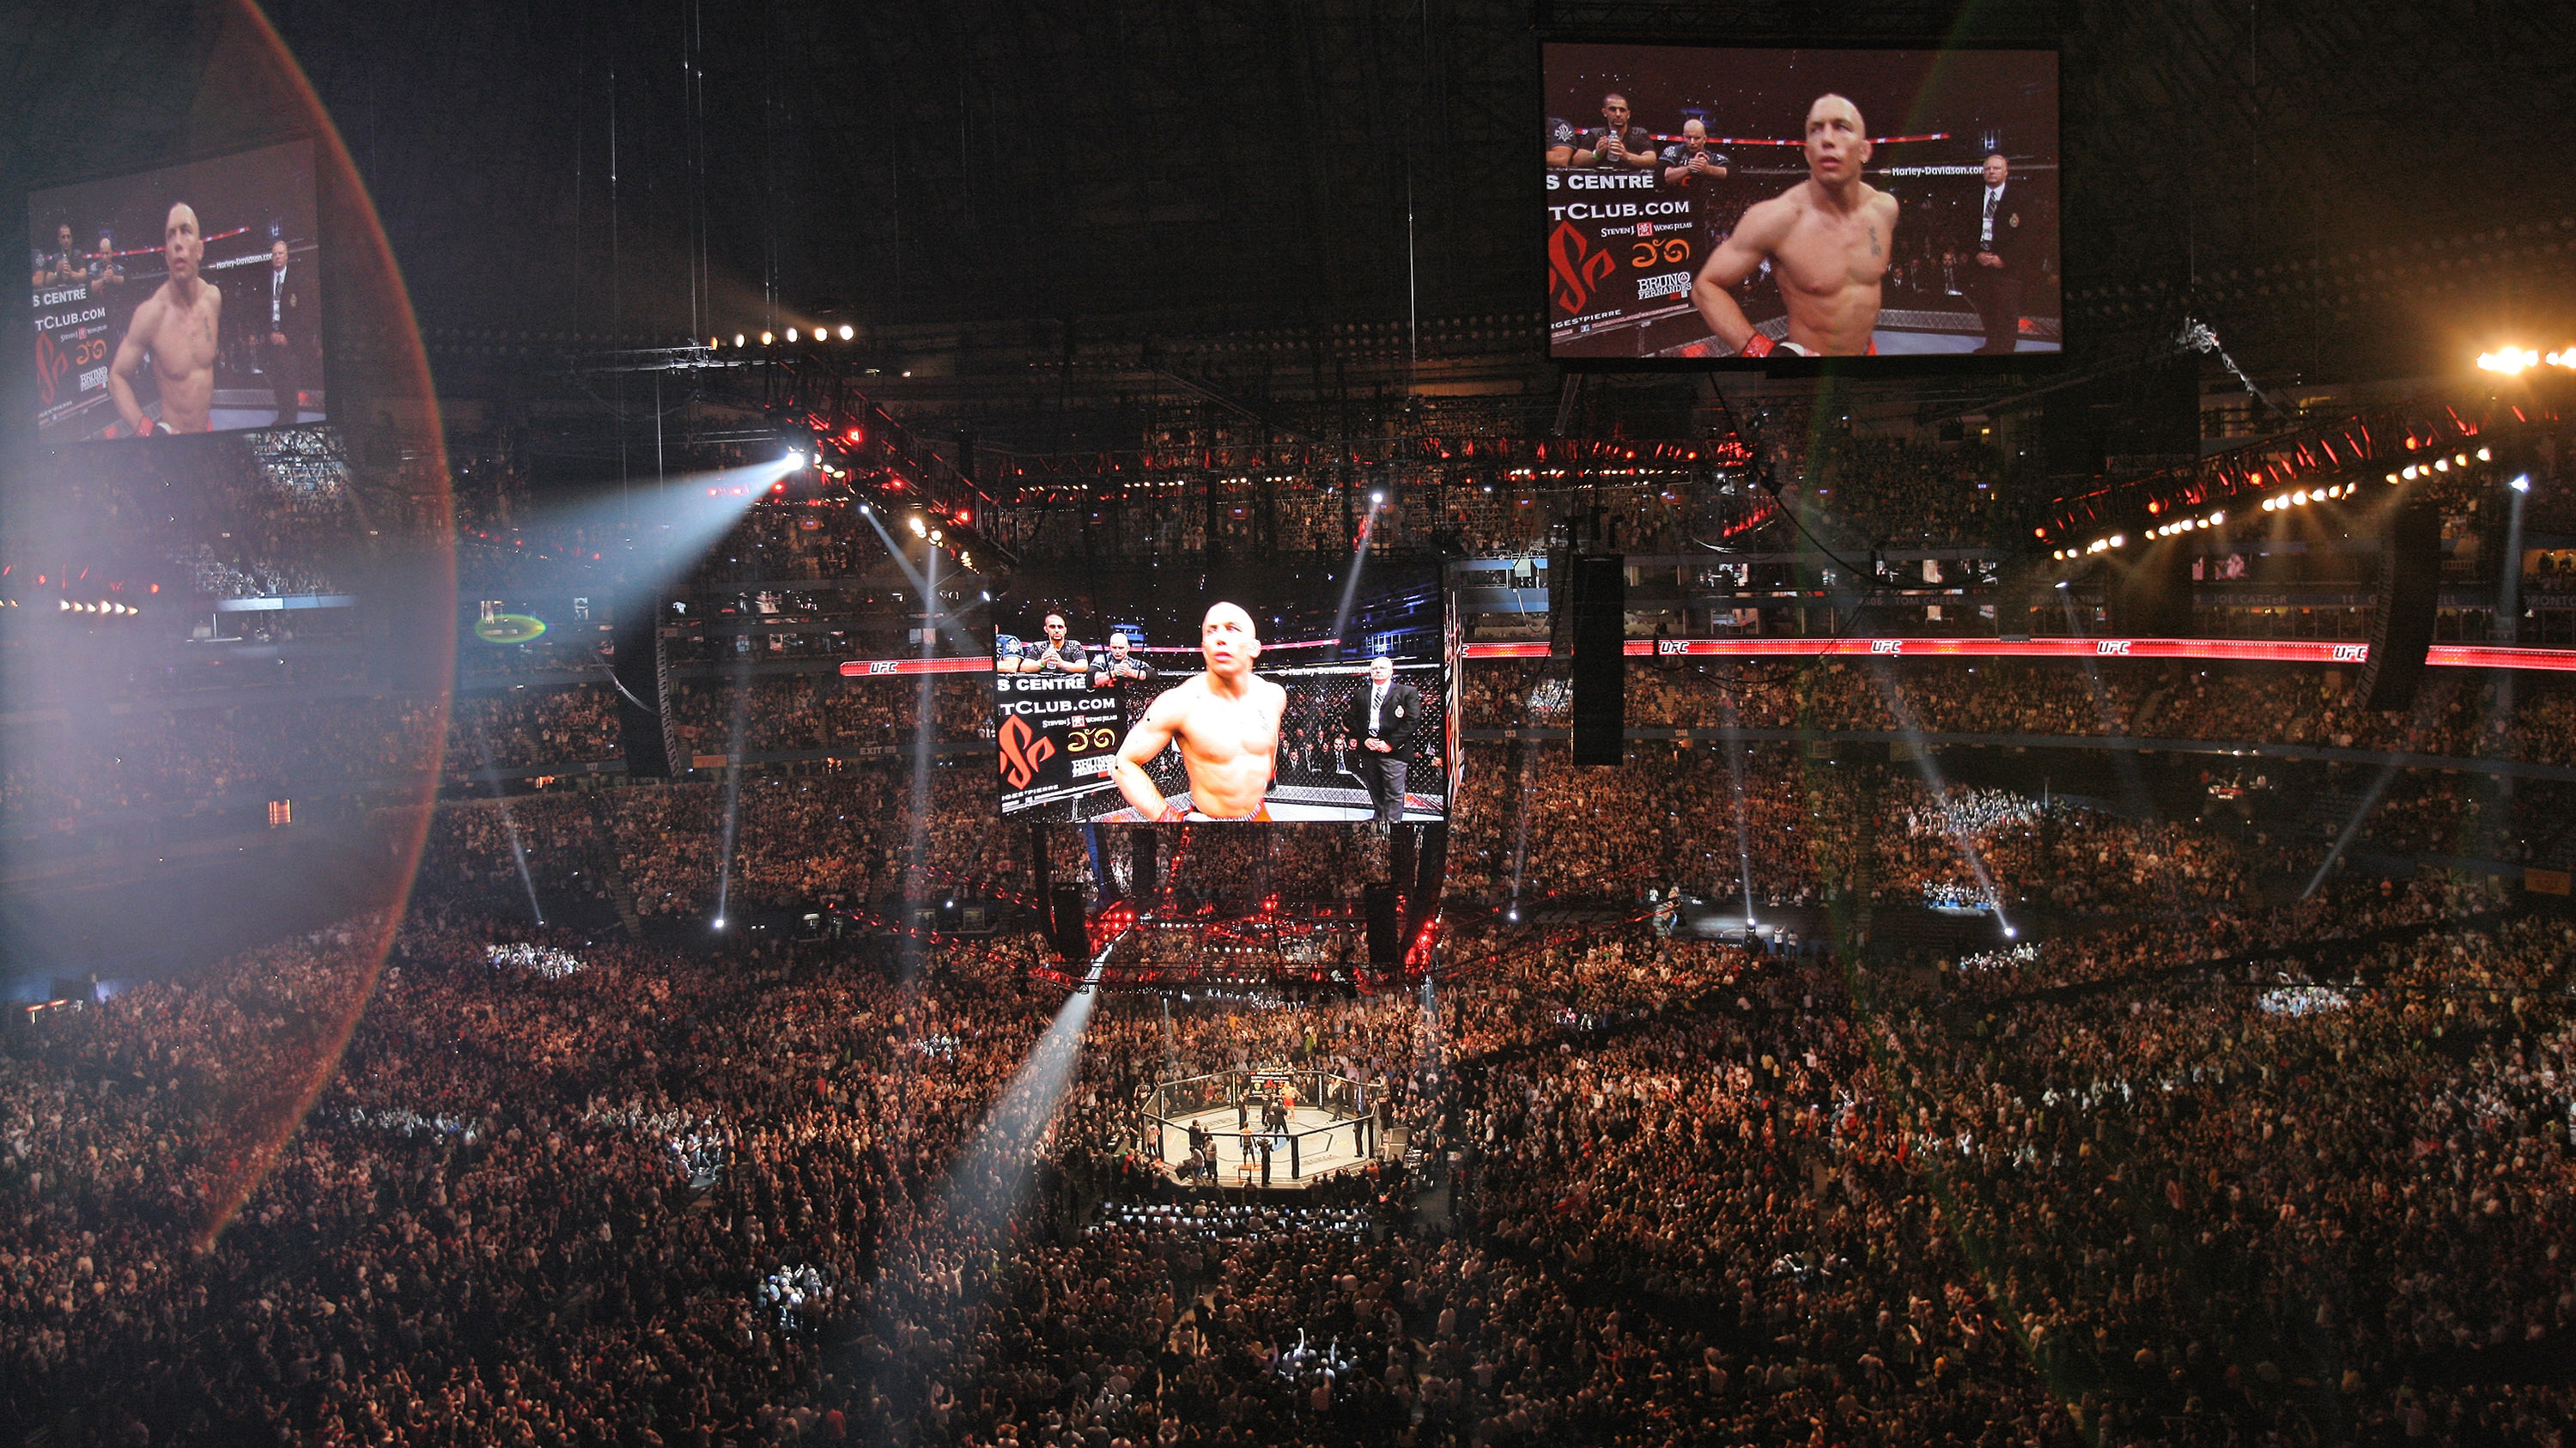 Fans came out in full force to Rogers Centre for GSP at UFC 129 (Photo by Tom Szczerbowski/Zuffa LLC/Zuffa LLC via Getty Images)